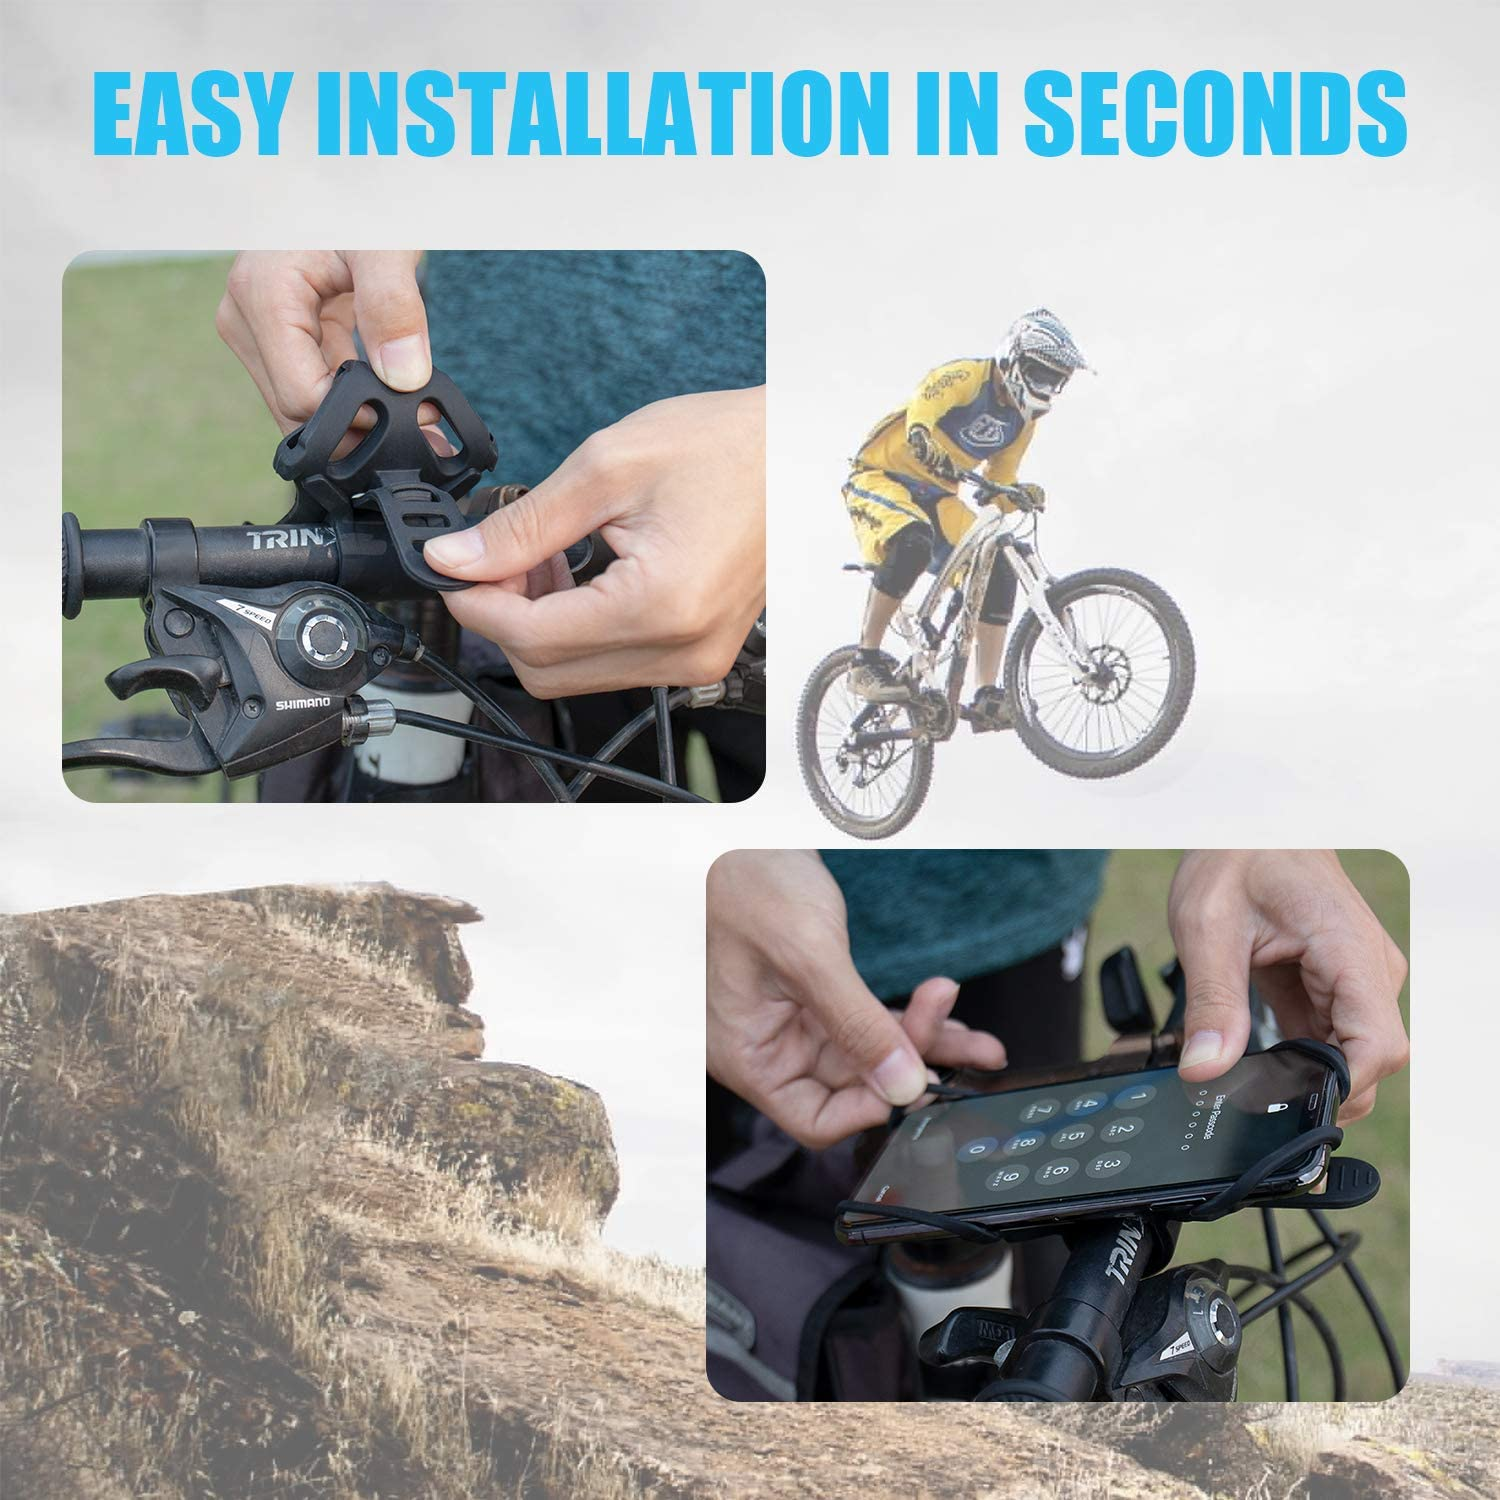 Silicone Soft Rubber Fits All Smartphones 2 Pack Bike Phone Mount Universal Rubber Bike Phone Holder and Motorcycle Phone Mount Bike Accessories WixGear Phone Holder for Bicycle Handlebars